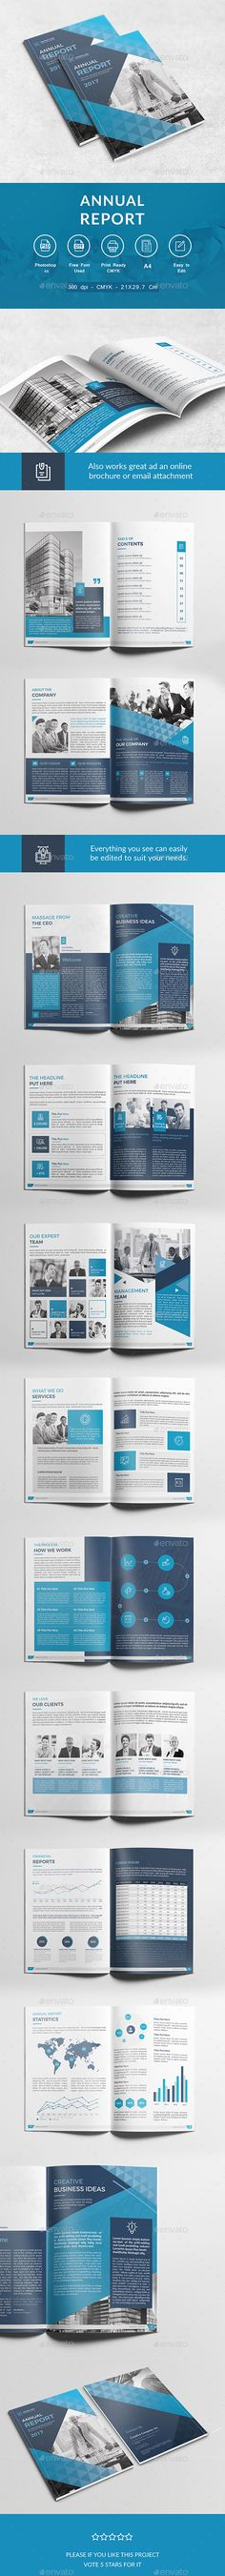 Annual Report Template PSD